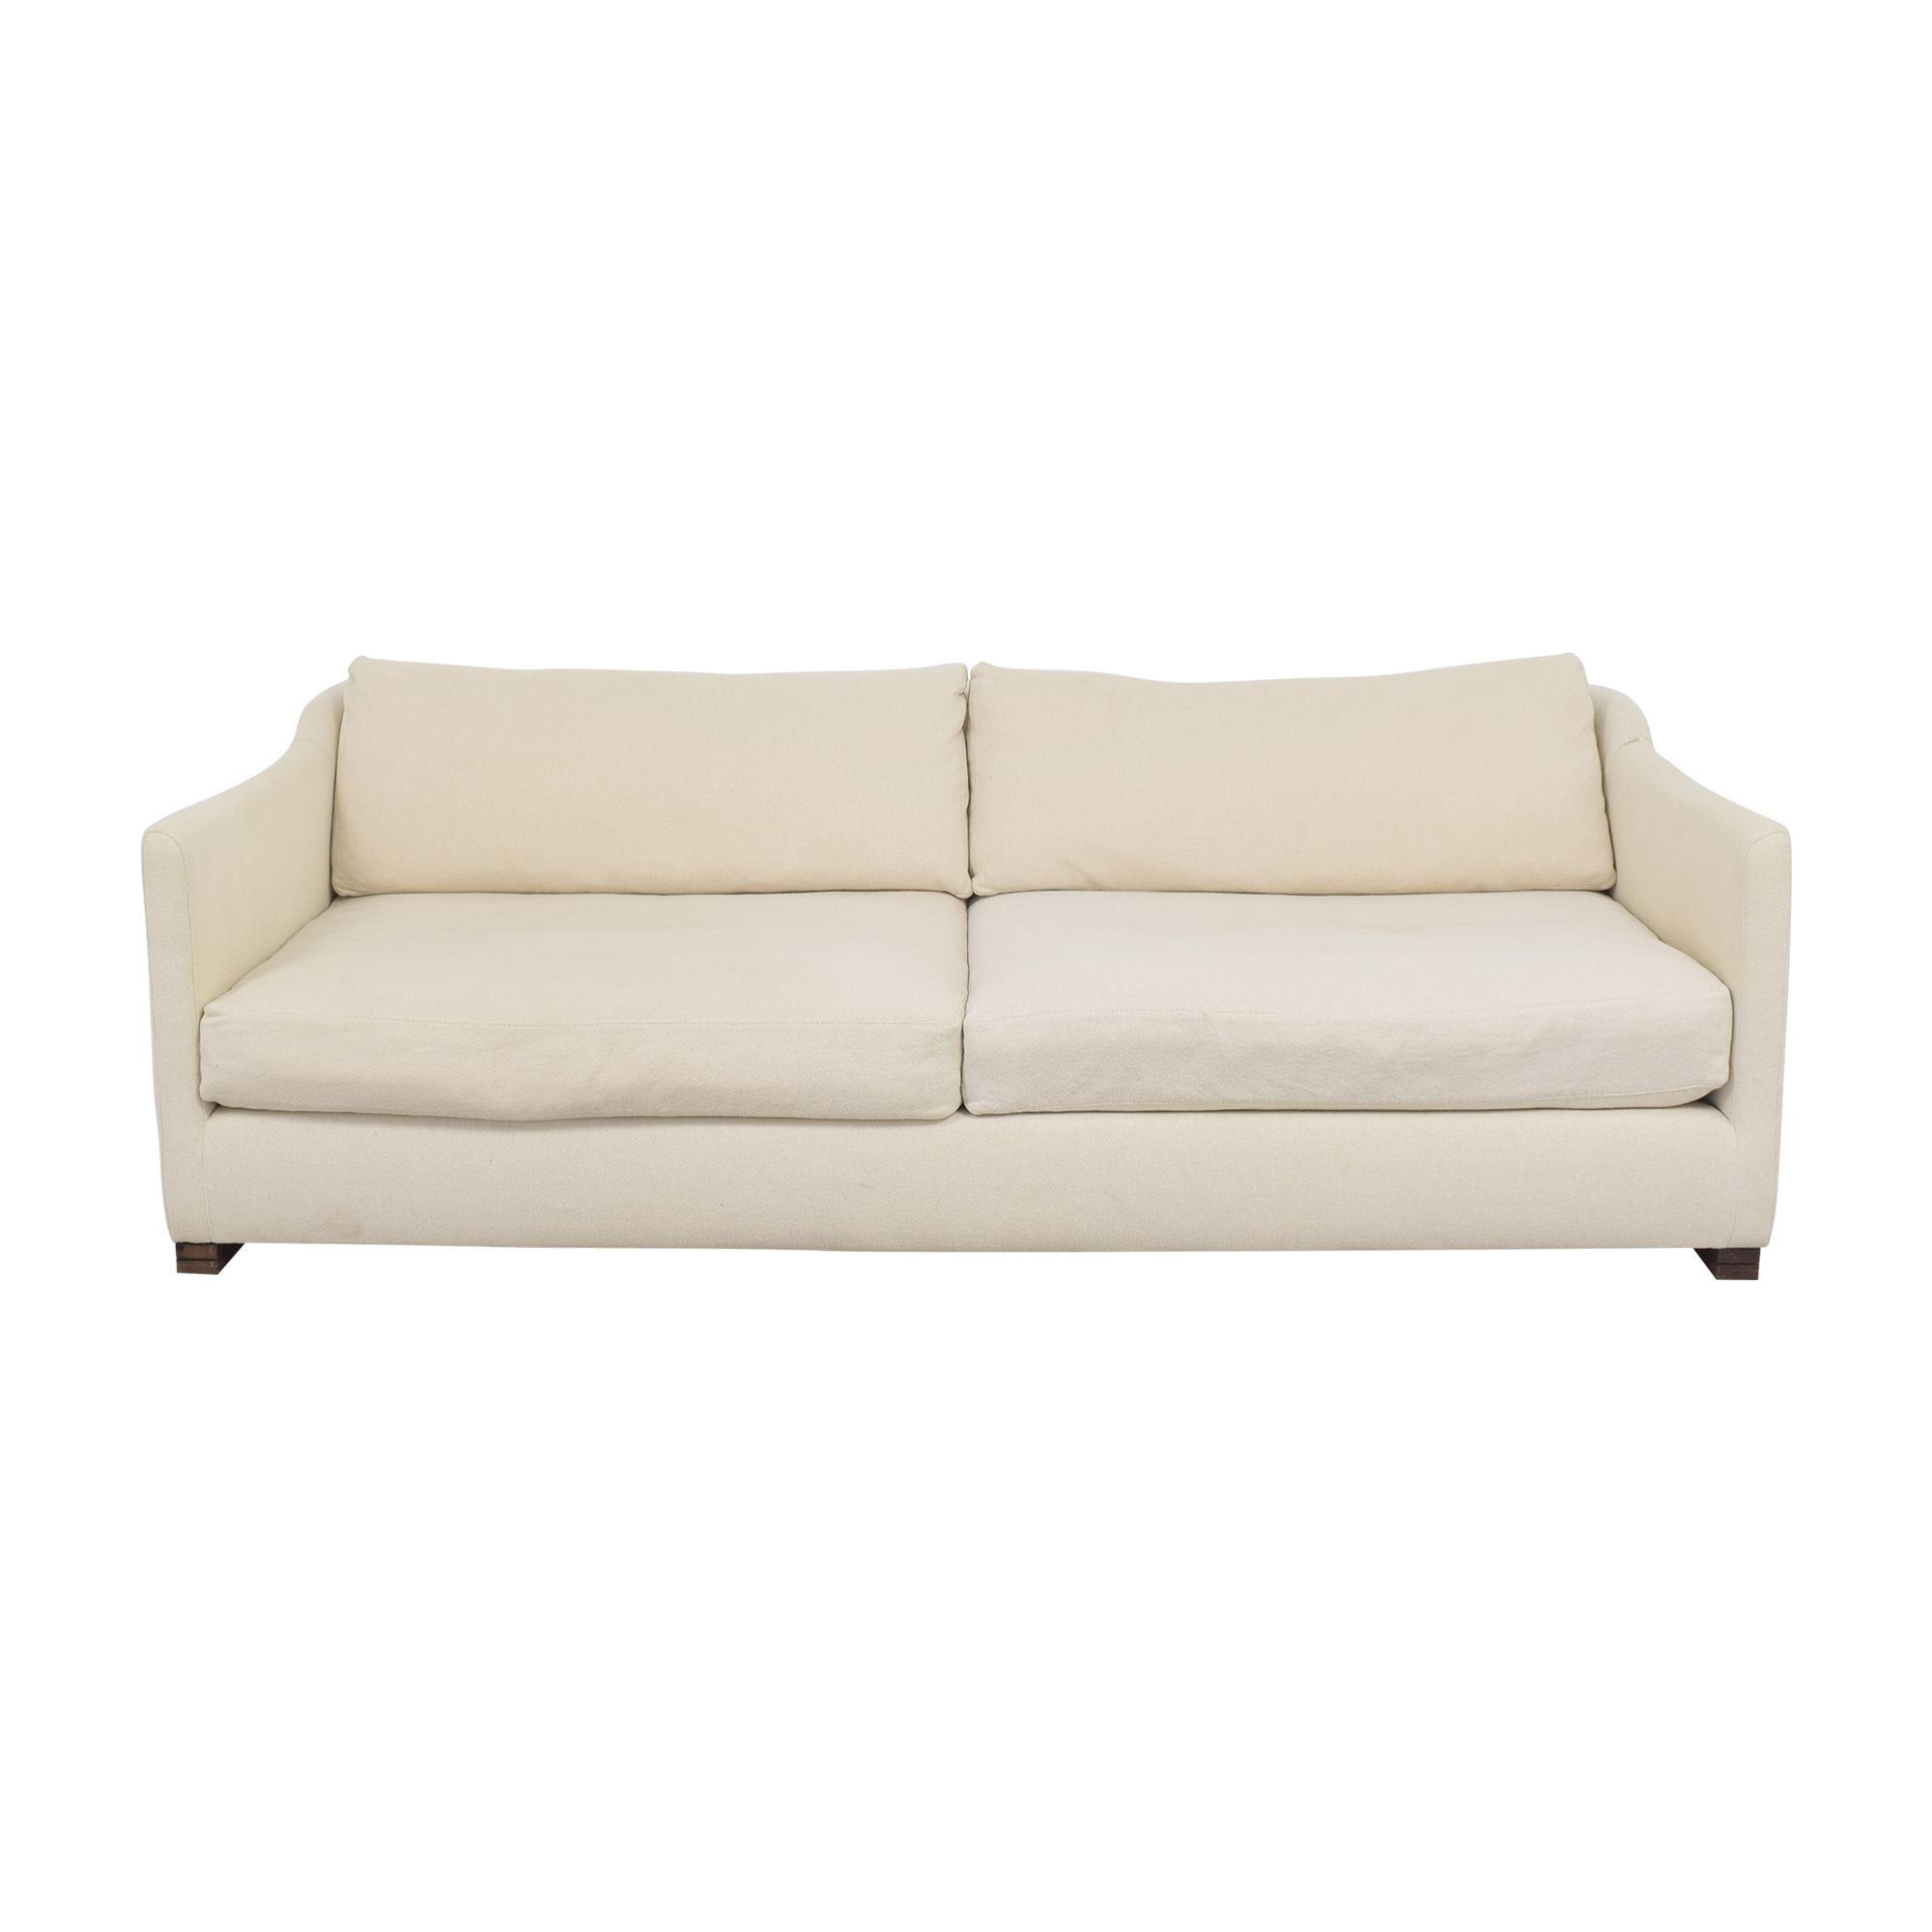 Cisco Brothers Cisco Brothers Dexter Wide Sofa discount